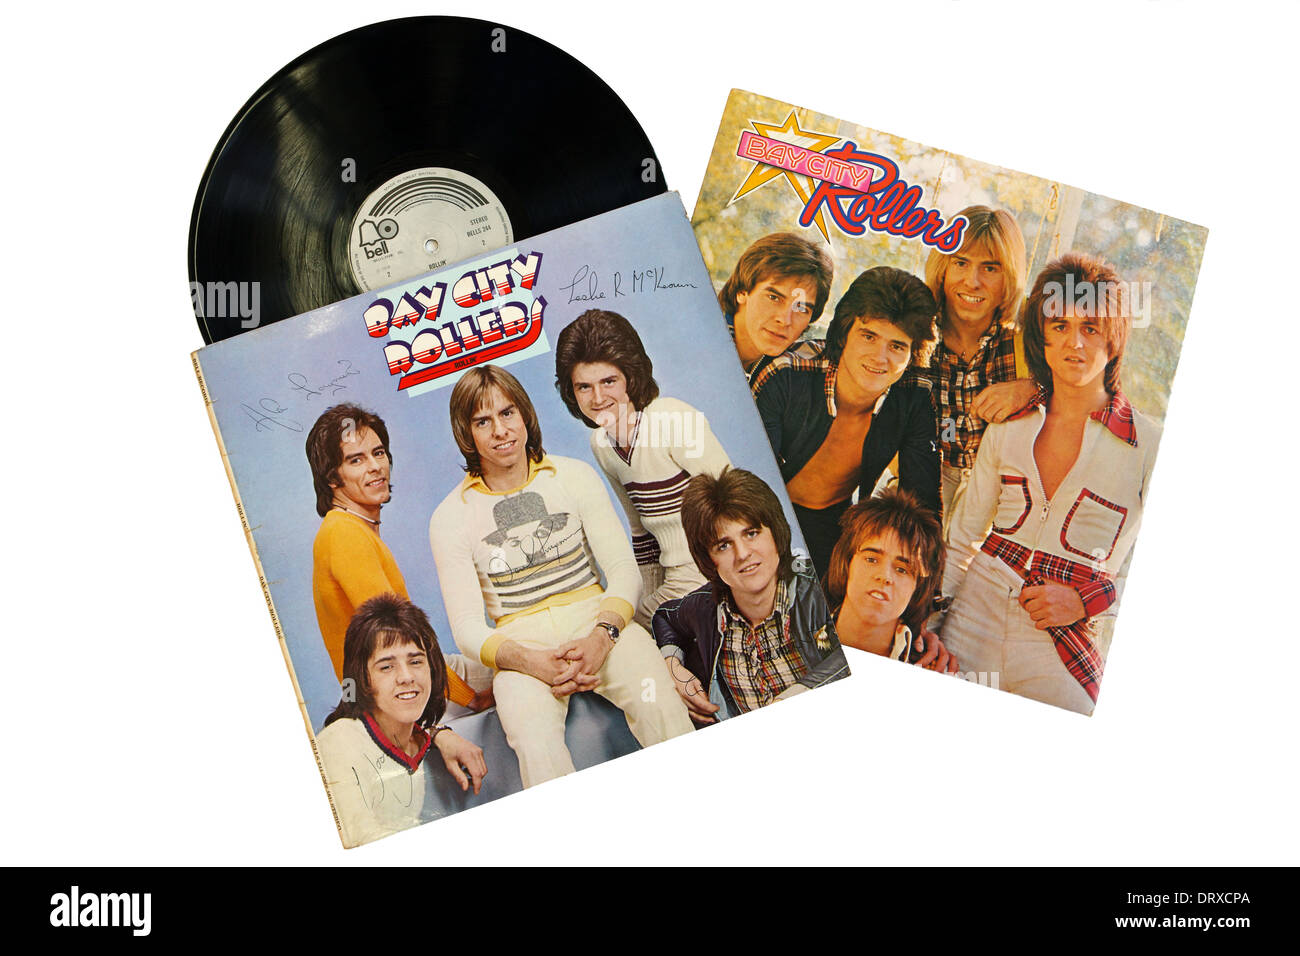 Bay City Rollers LP Records on a white background - Stock Image